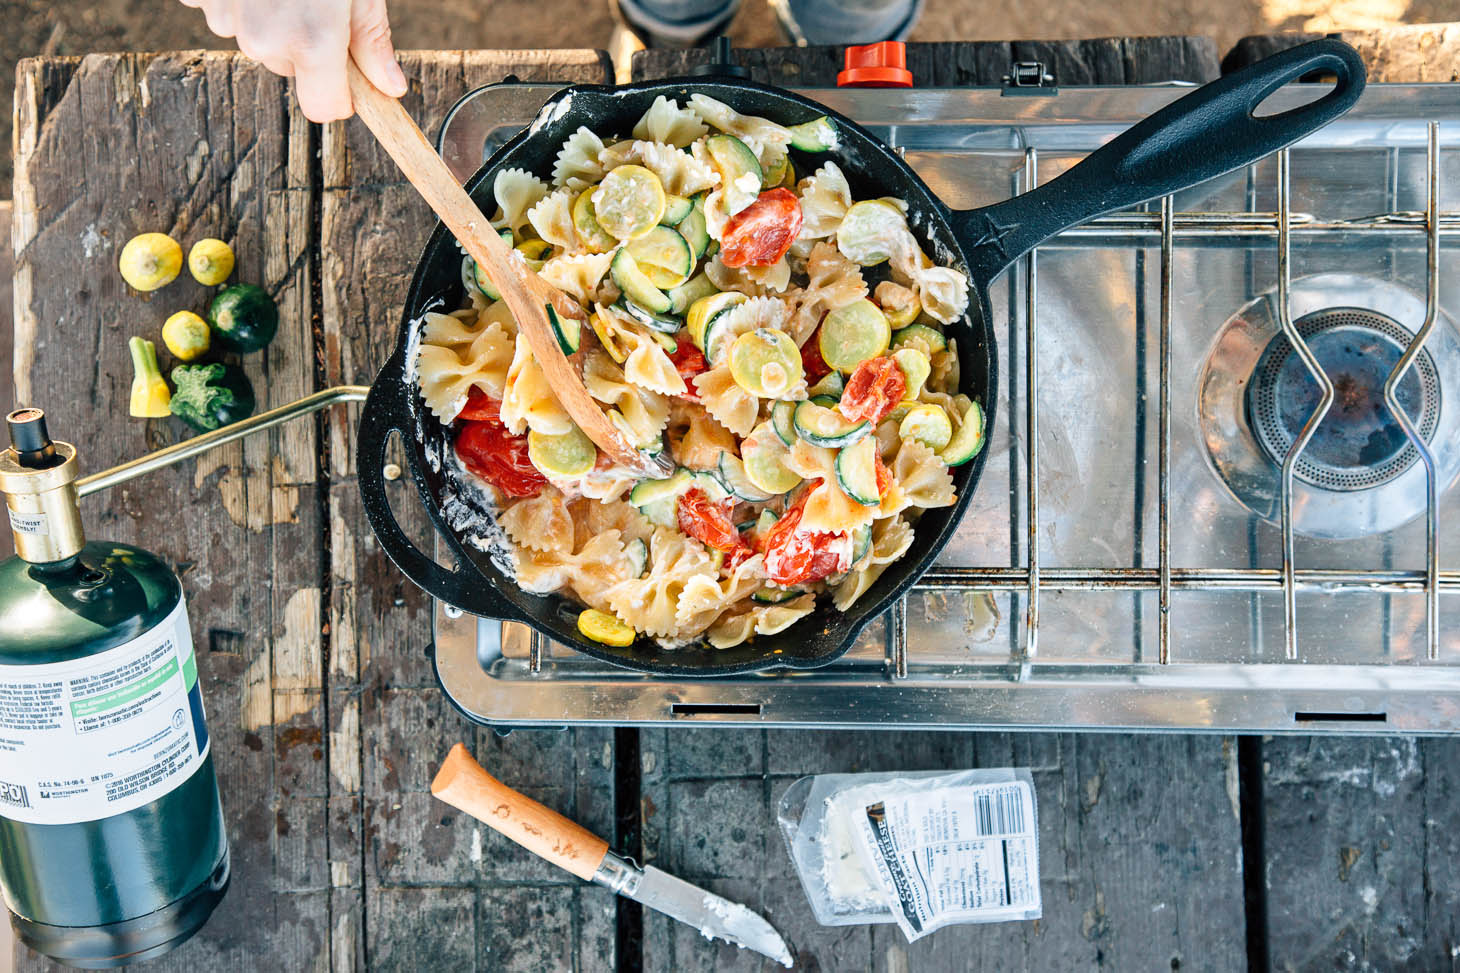 Squash, zucchini, tomatoes, and pasta in a cast iron skillet on a camping stove.